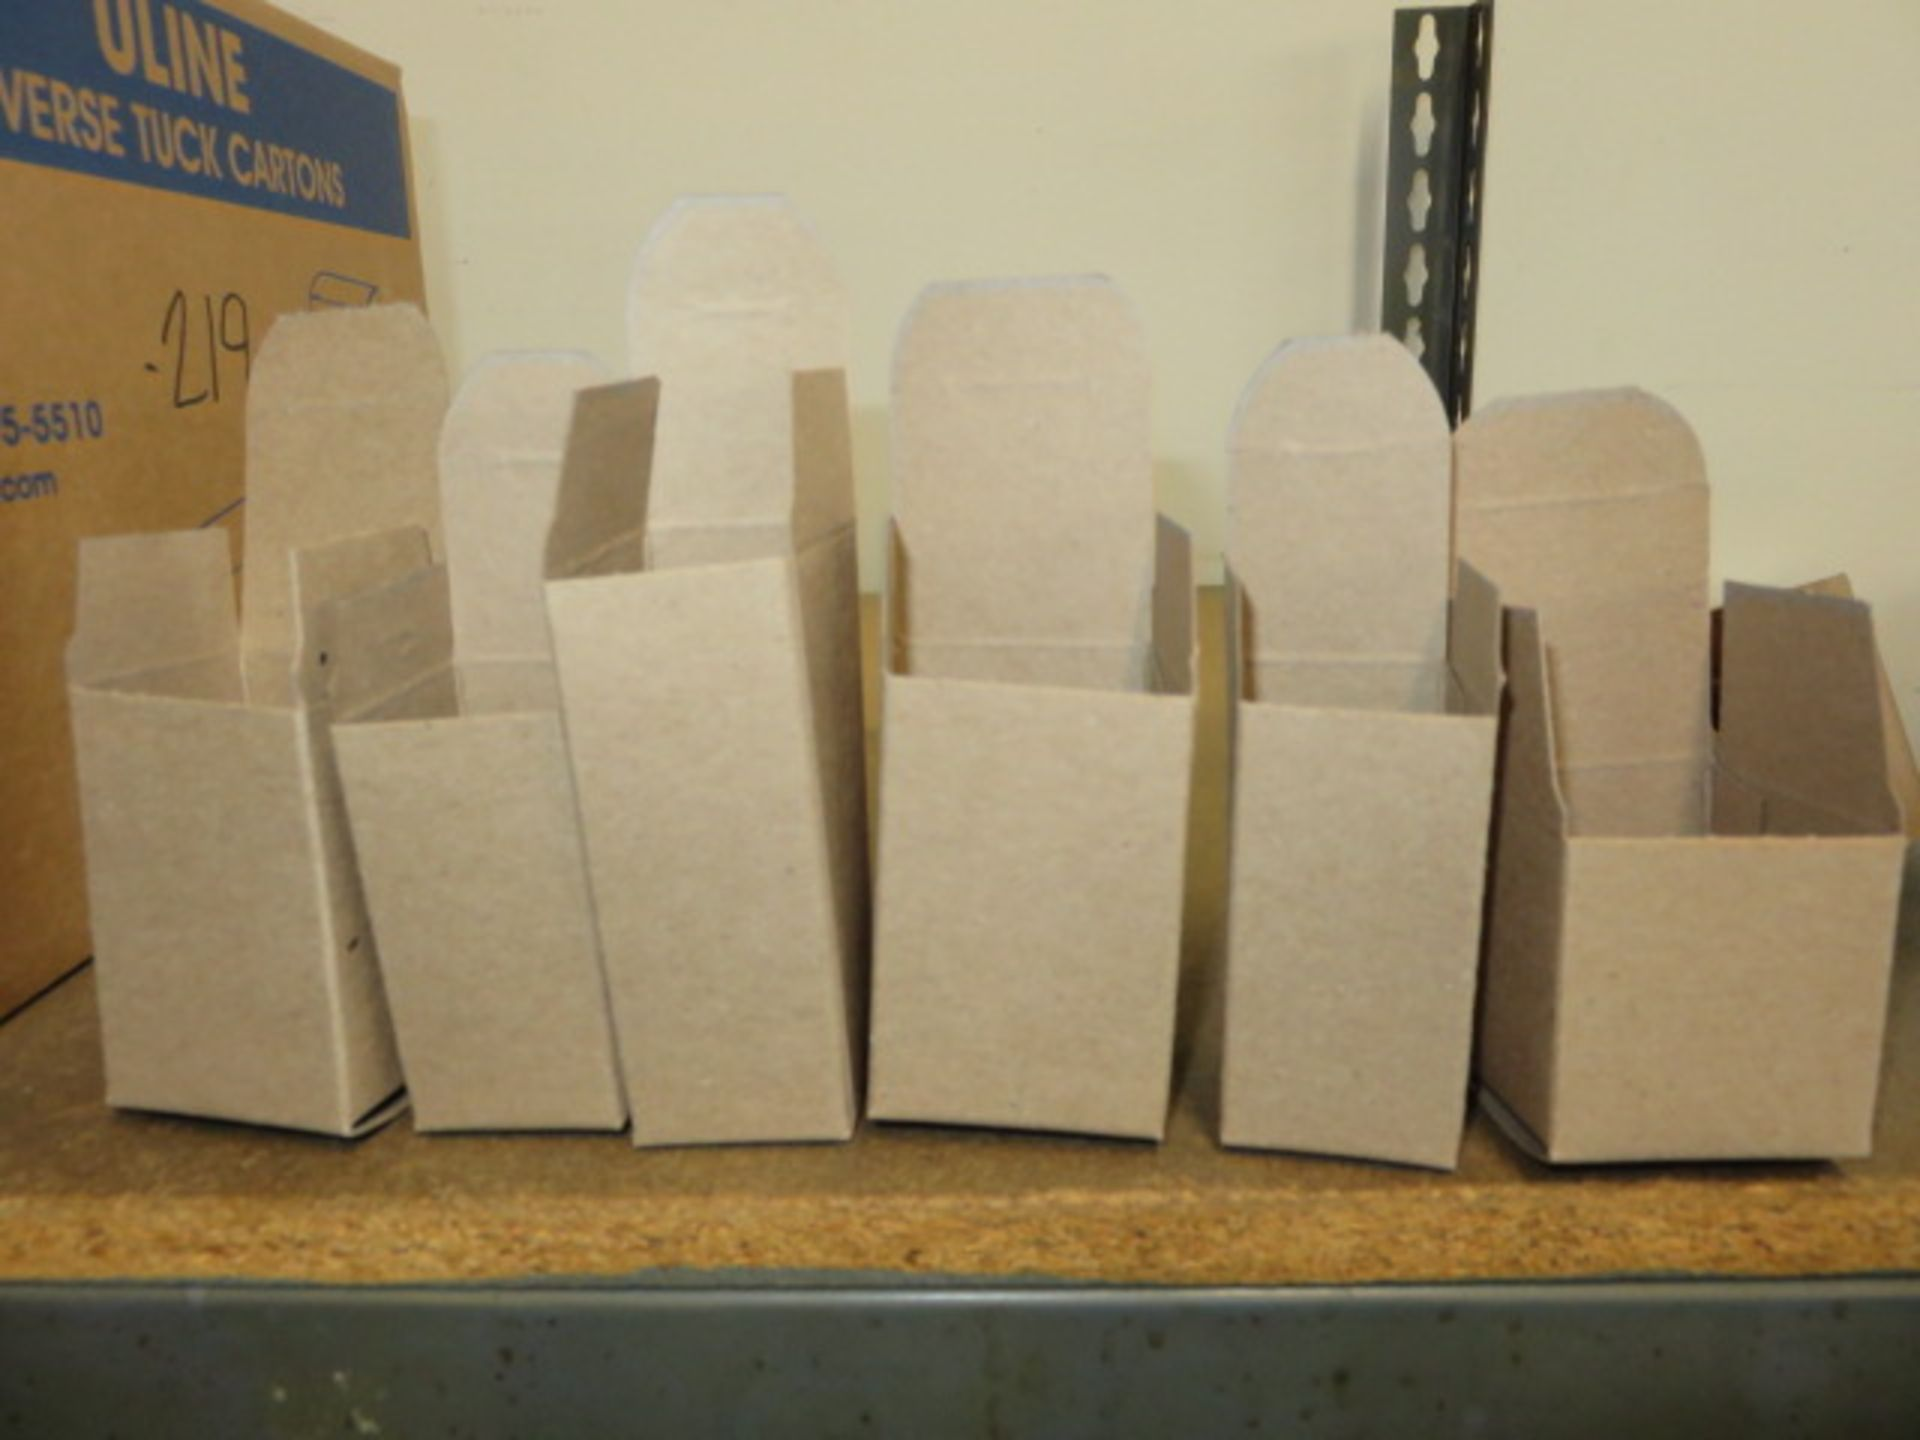 KRAFT REVERSE TUCK CARTONS, POLY & BUBBLE BAGS - Image 3 of 9